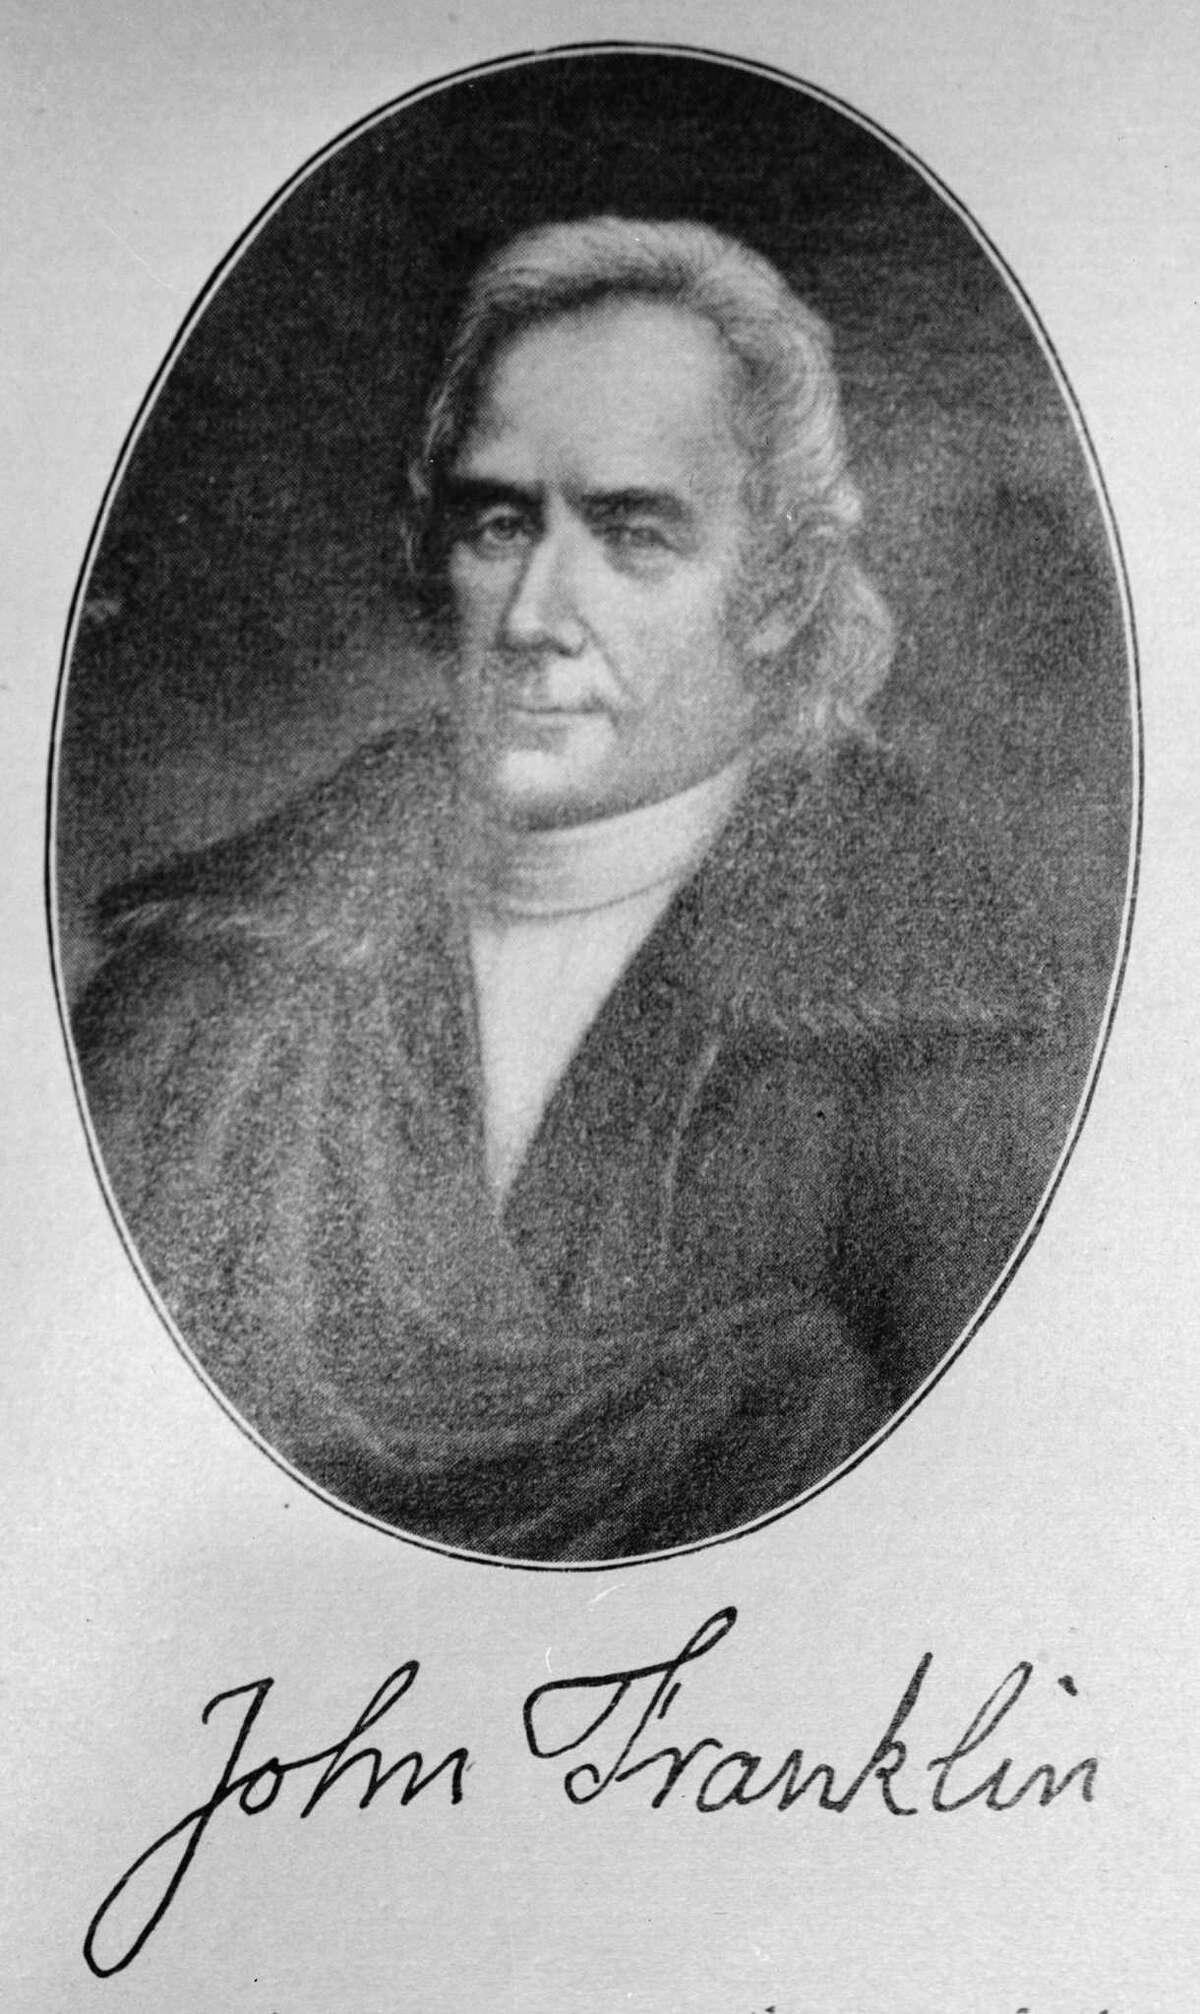 John Franklin, who led Connecticut troops during its war with Pennsylvania, called the Pennamite-Yankee War.